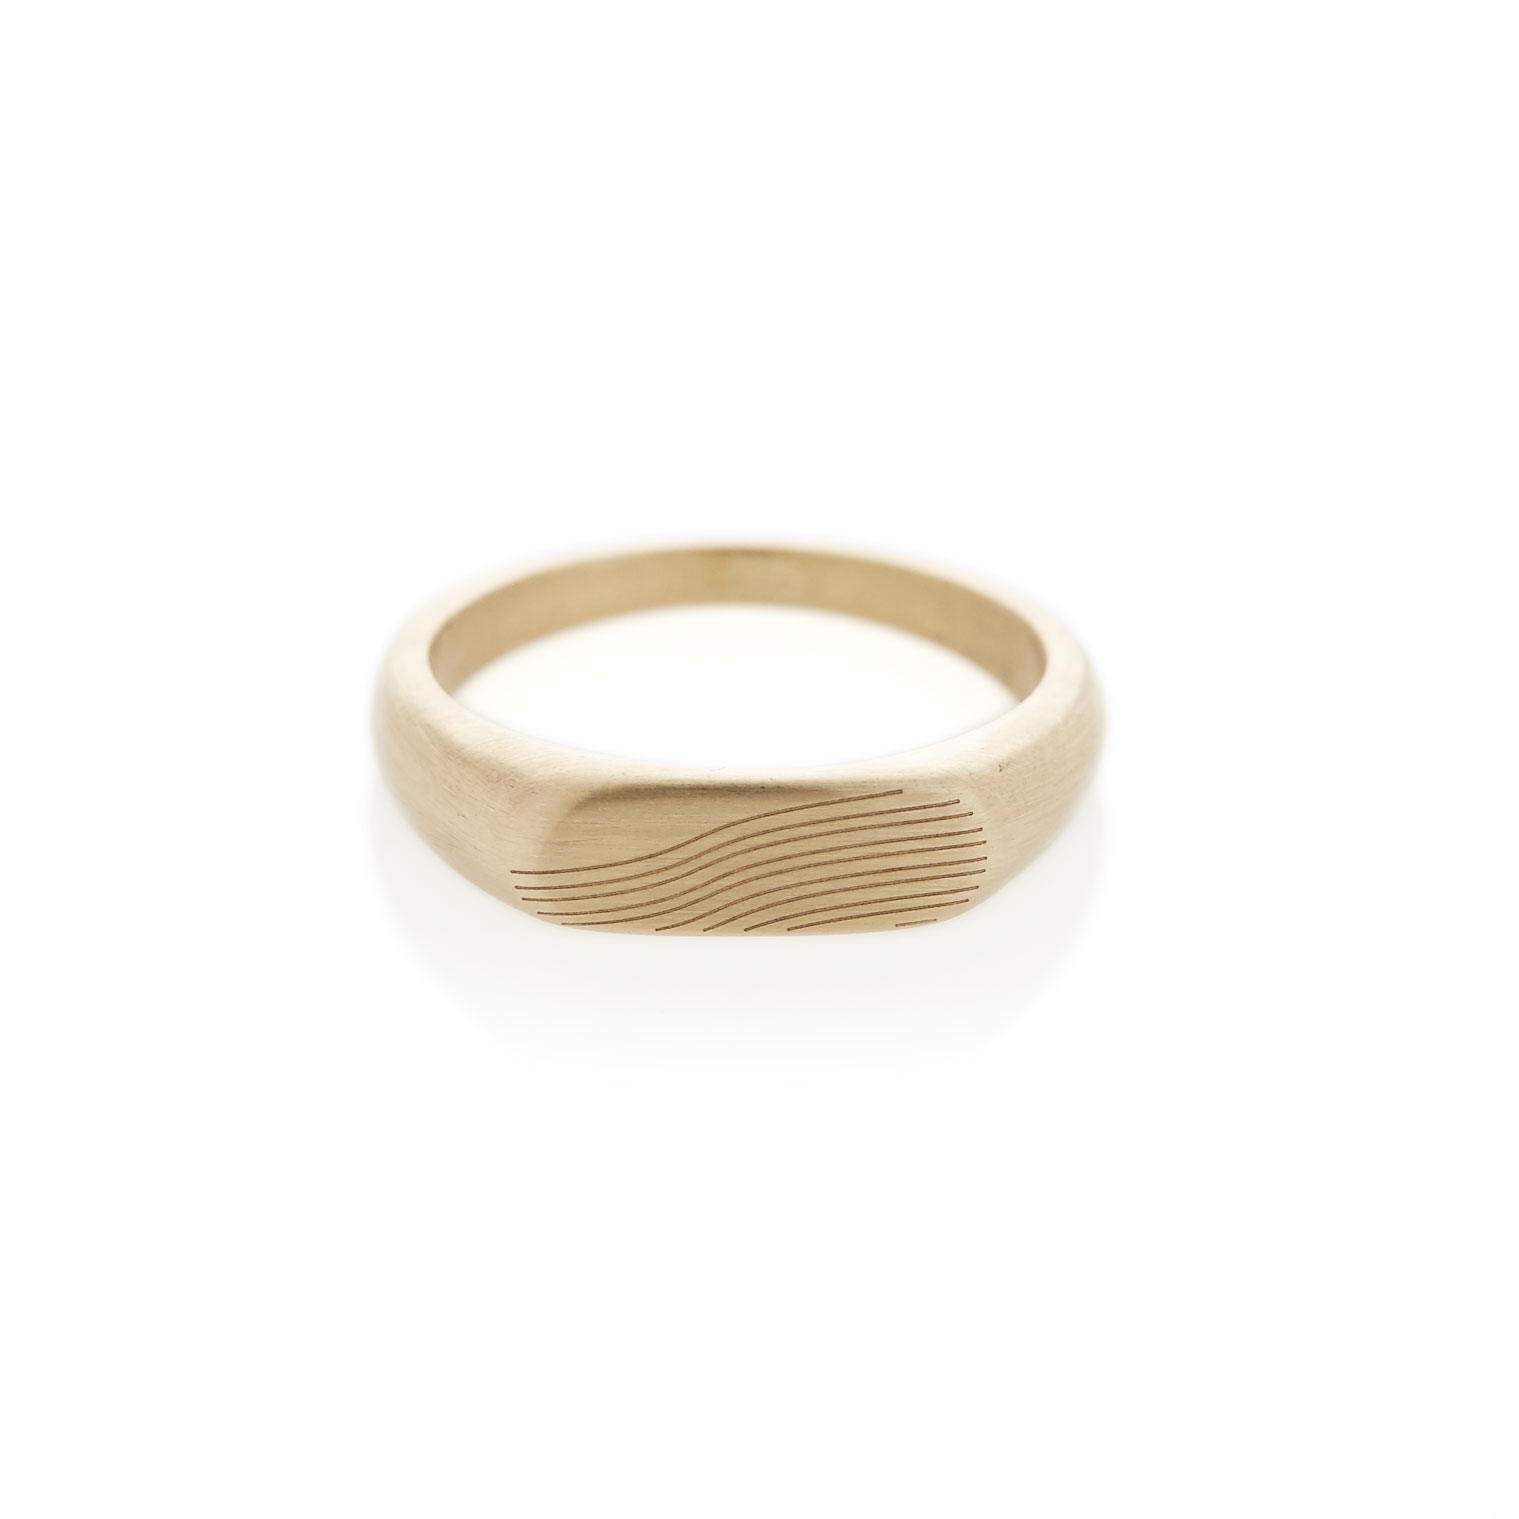 Slope yellow gold landscape signet ring